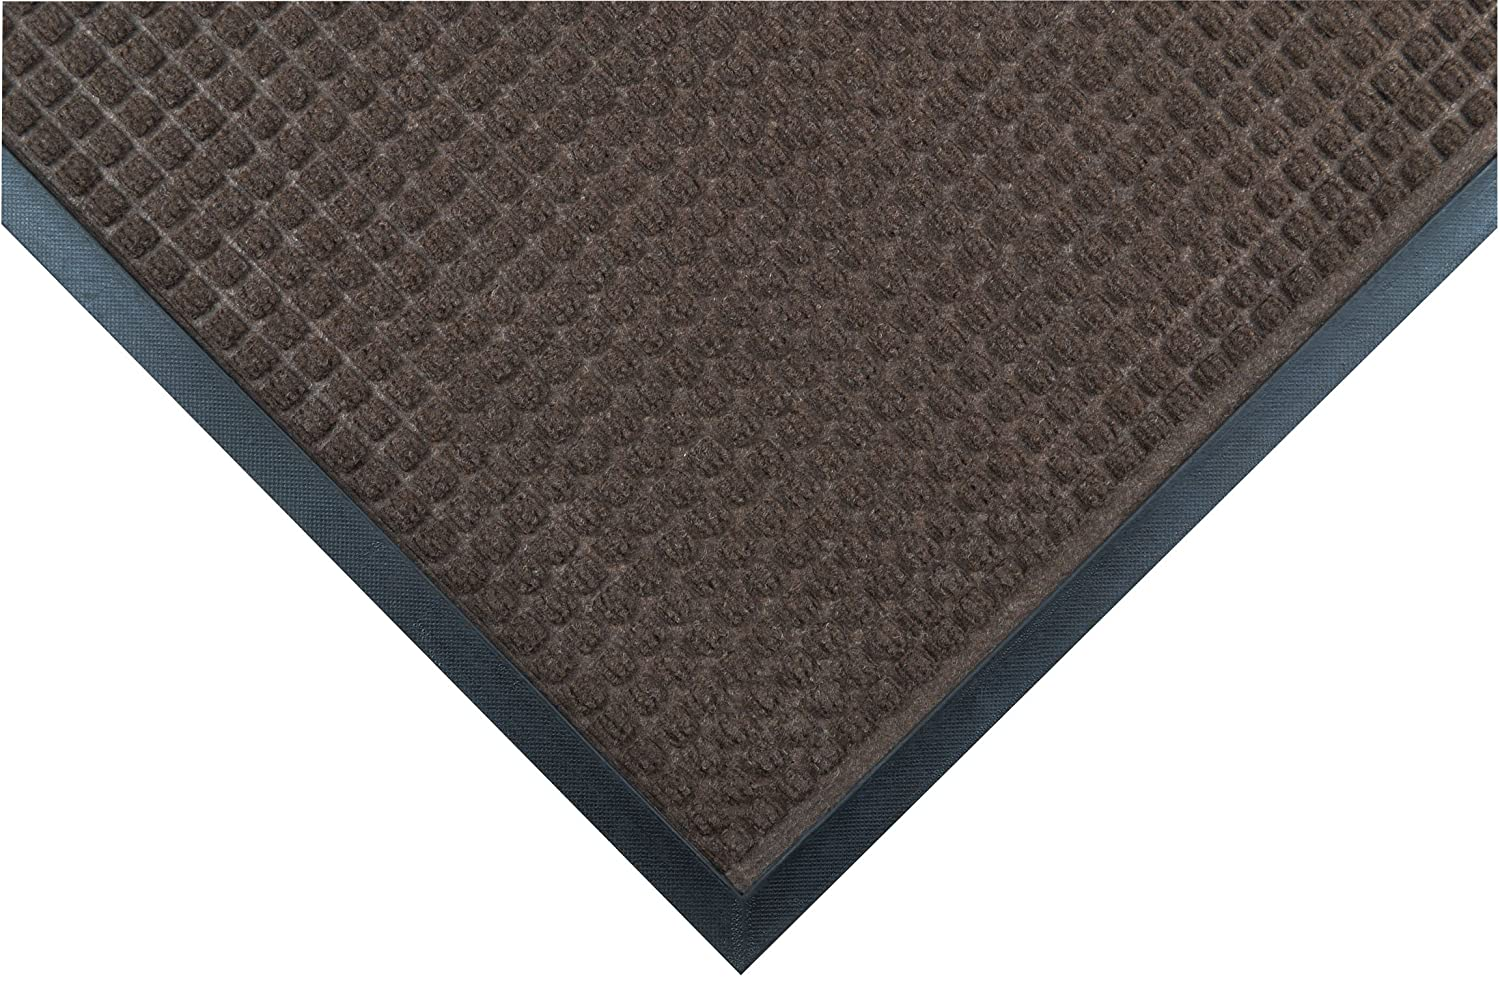 Notrax Mats for Professional Use 166S0034BR Guzzler robust barrier mat with moulded cubes, BROWN